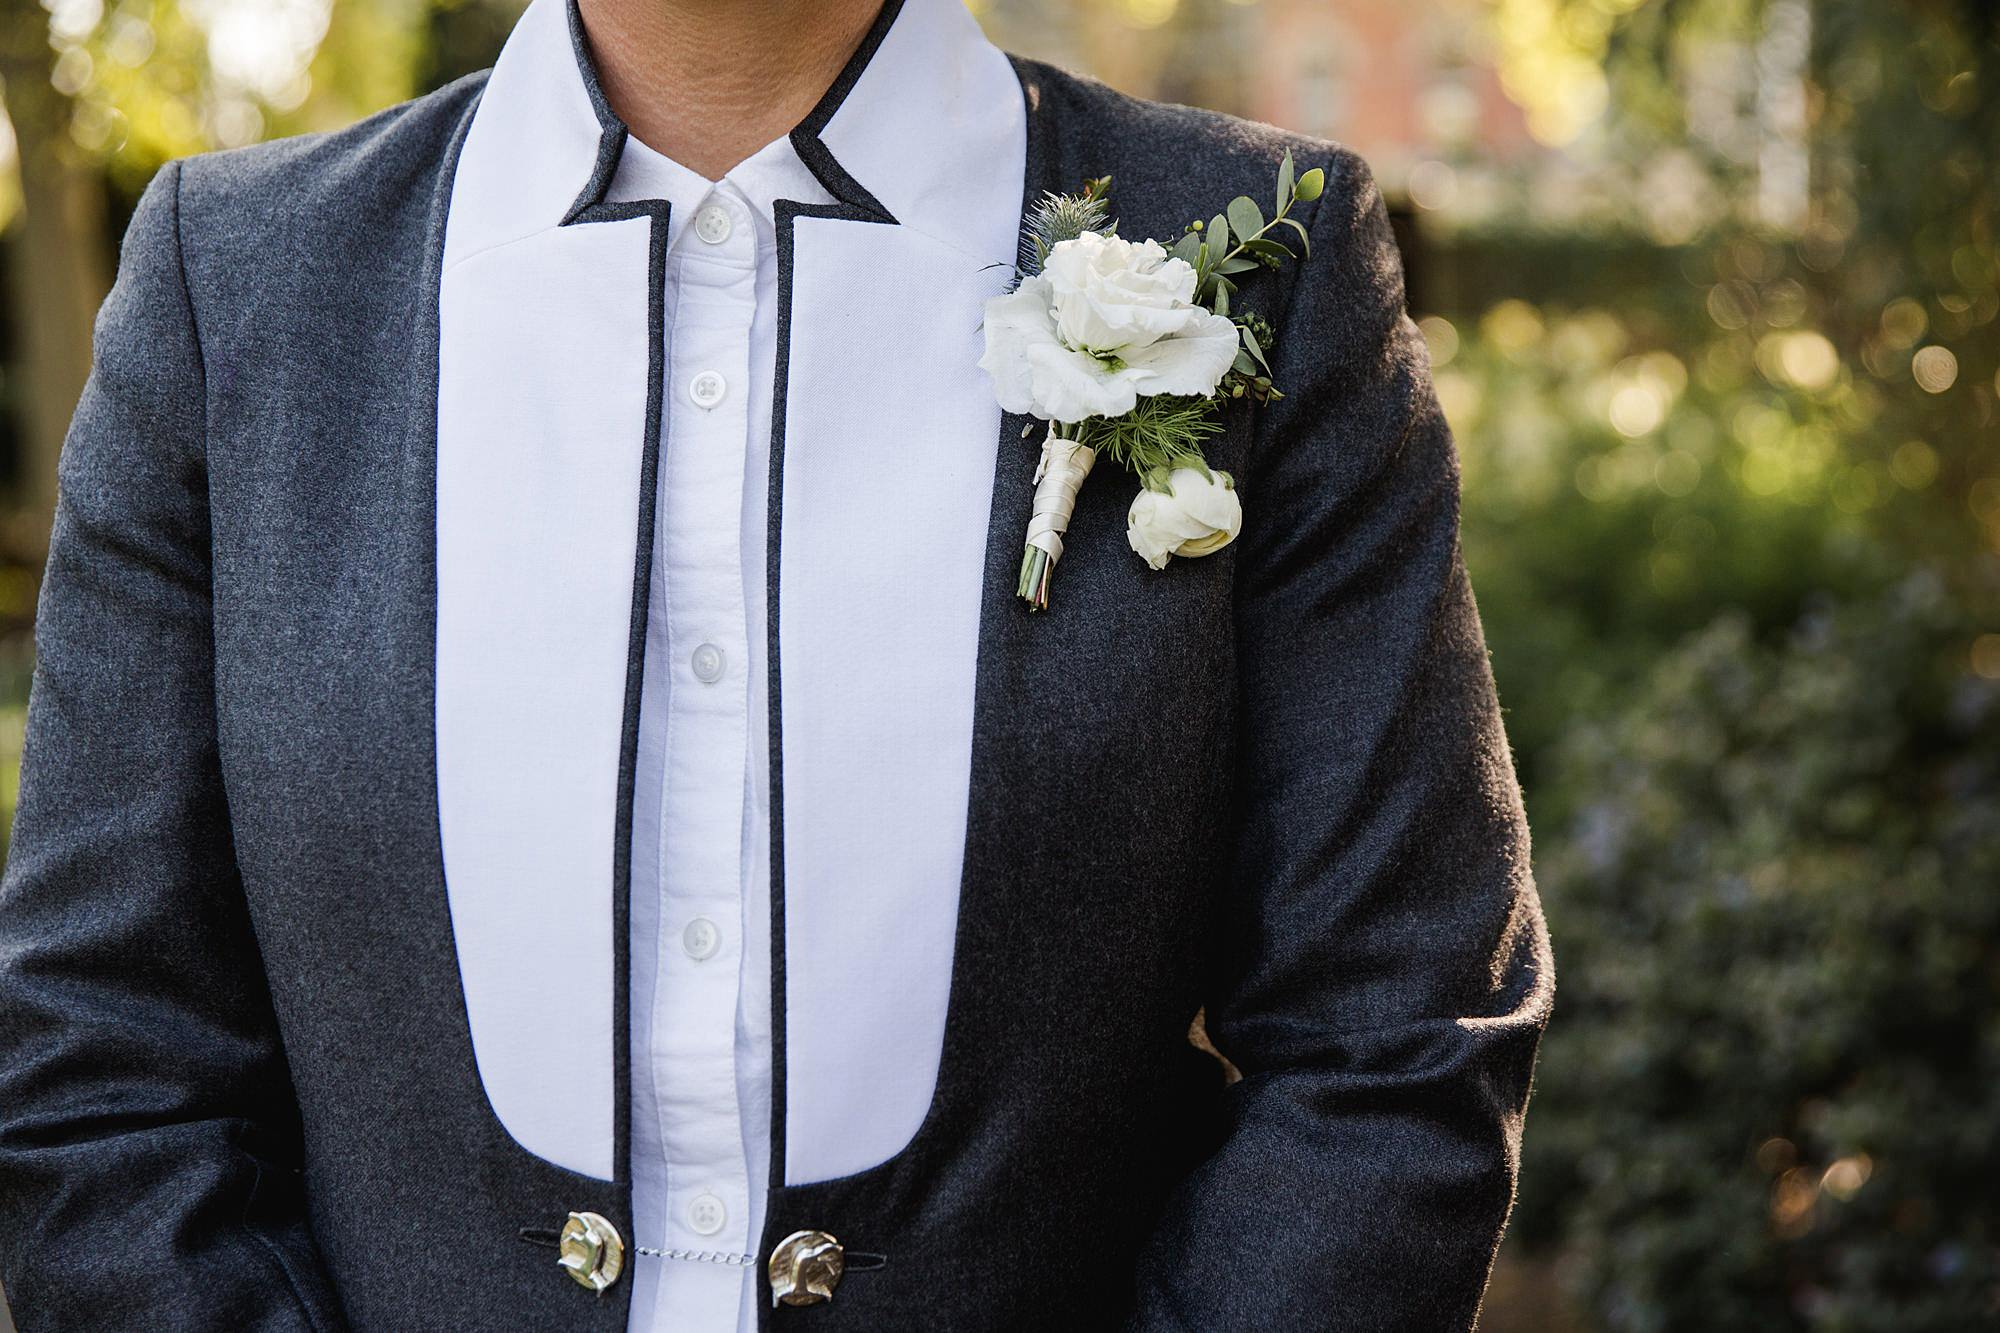 Twickenham wedding photography bride shows off her custom made wedding jacket